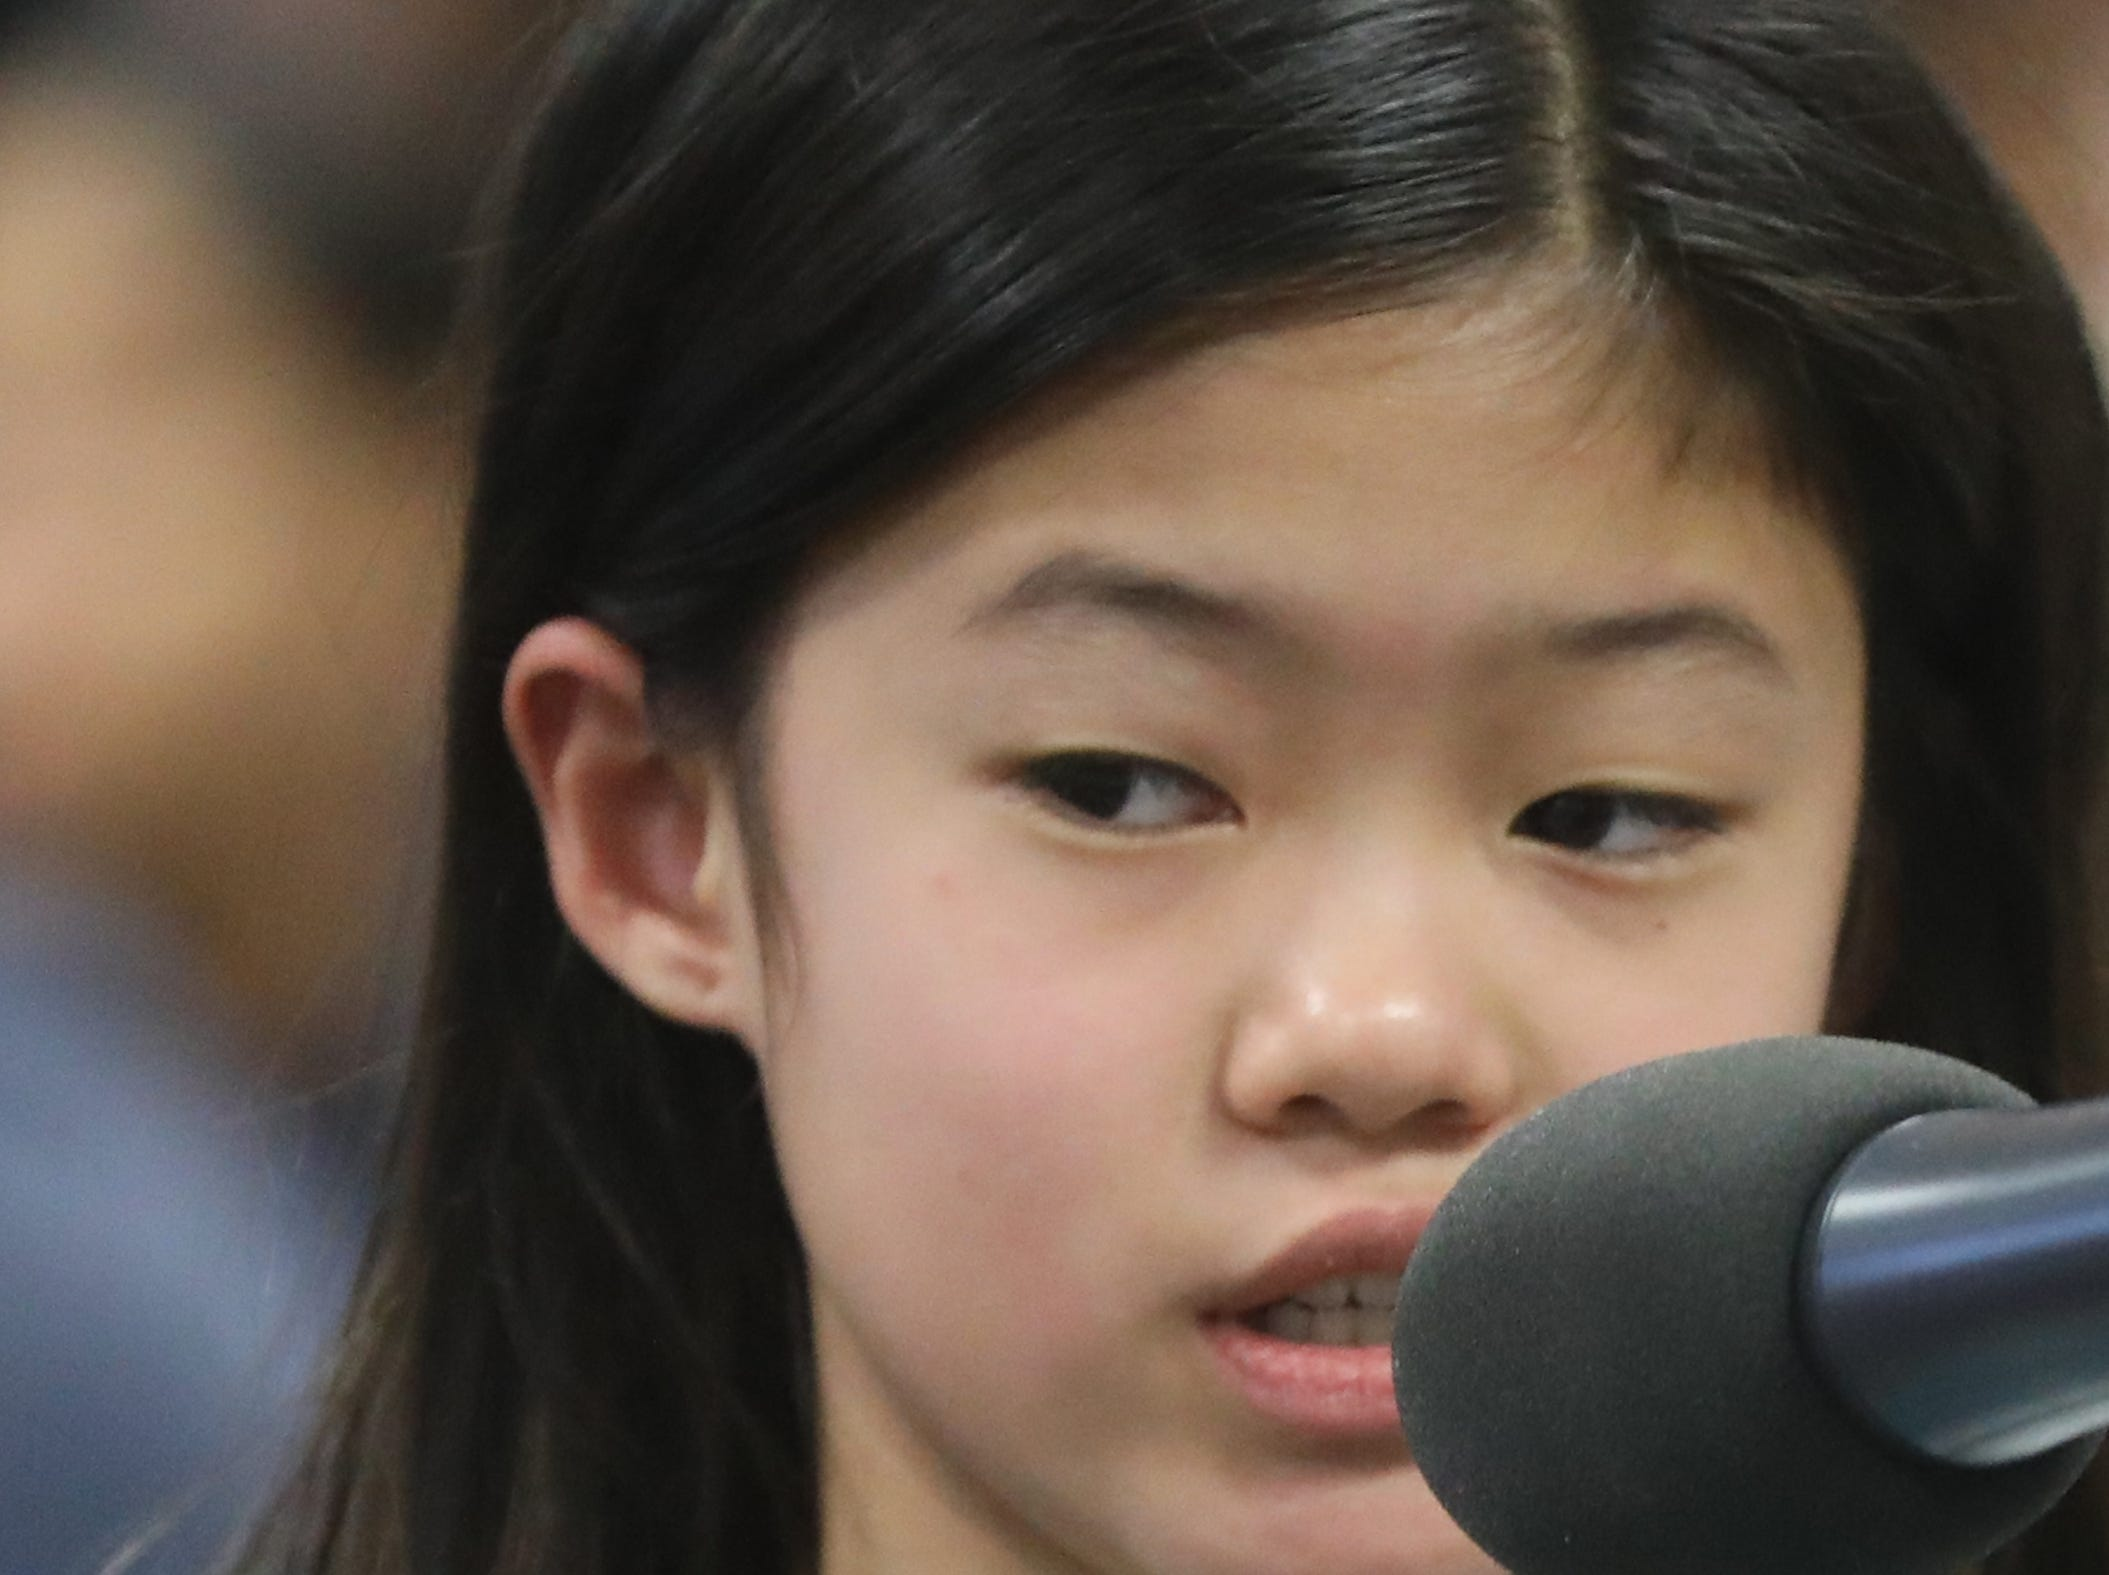 Rena Ryu, of Cresskill, competes in the first round of the 2019 North Jersey Spelling Bee, in Paramus. Thursday, March 14, 2019